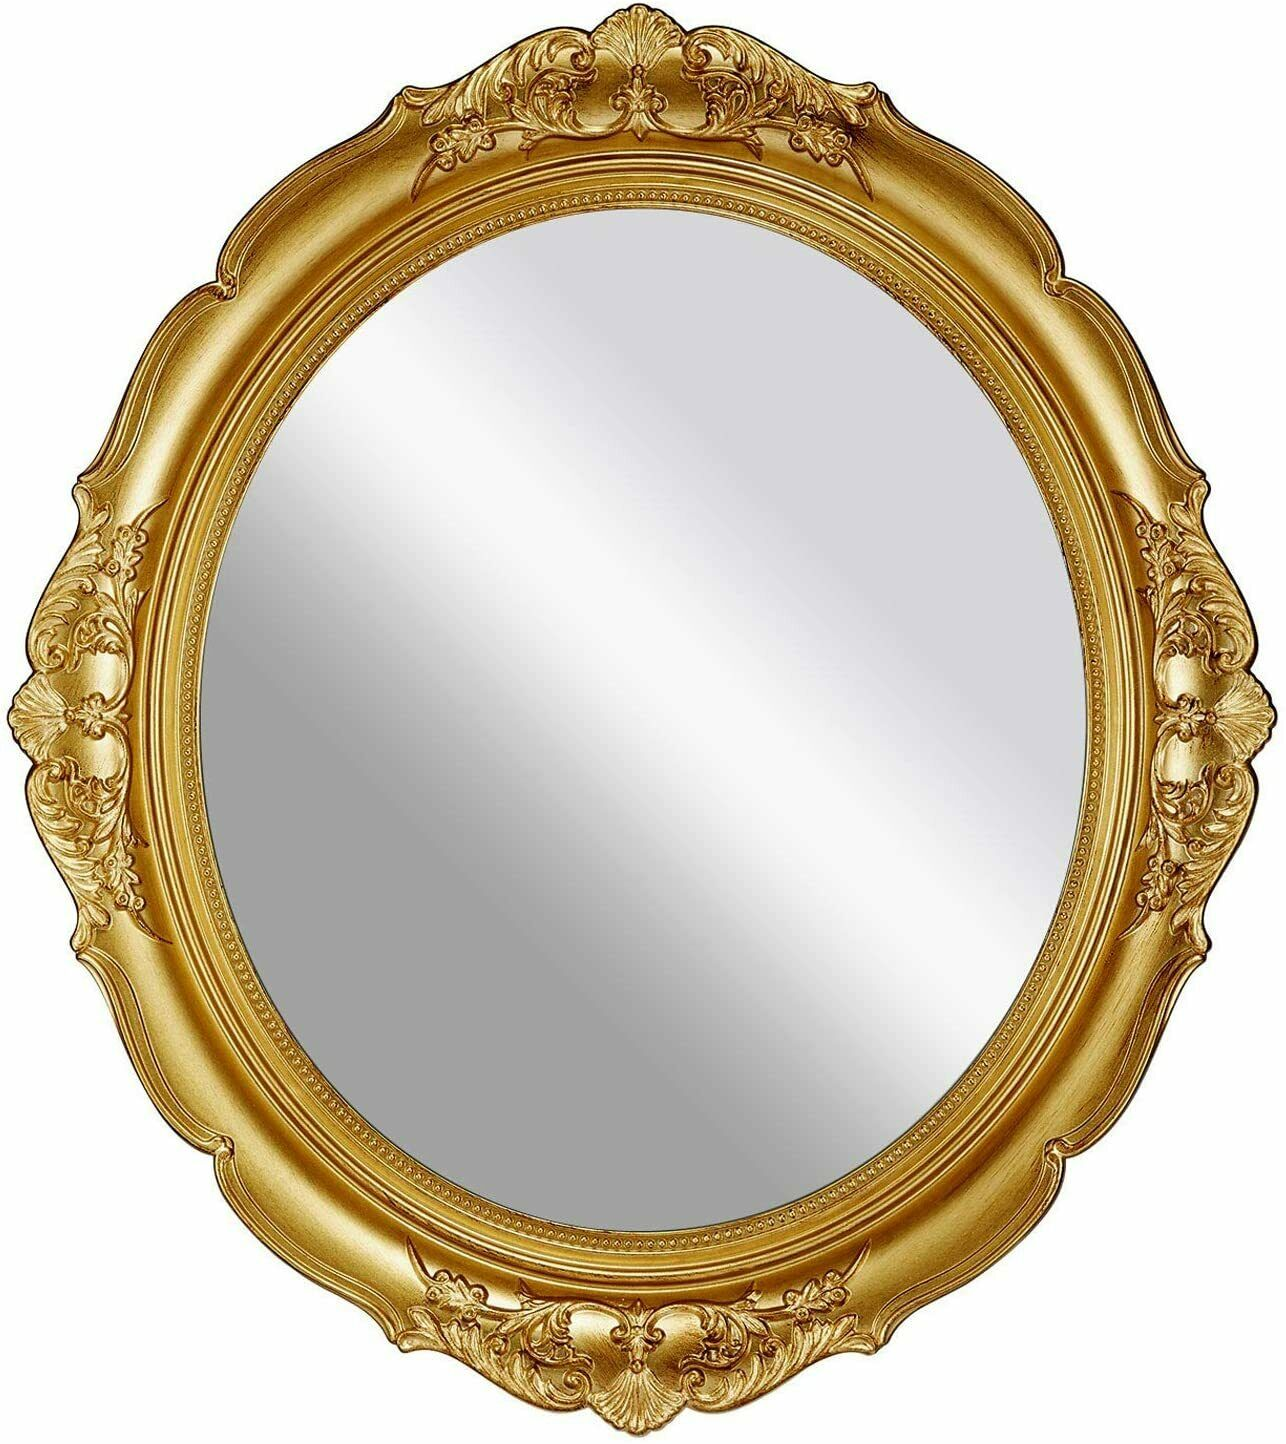 Decorative Mirrors For Walls Contemporary Art Small Wall Mirror For Living Room For Sale Online Ebay